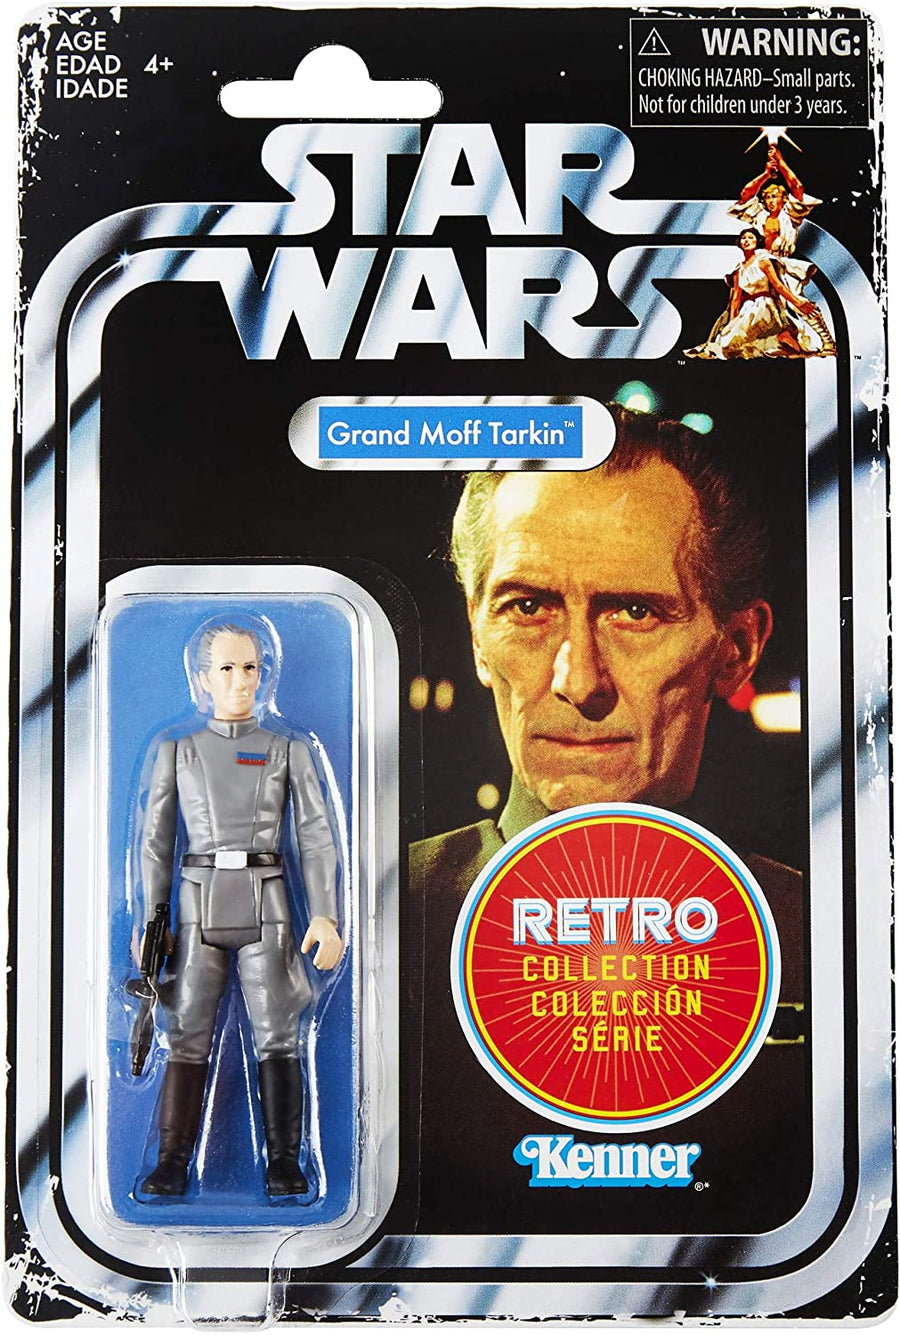 Star Wars The Retro Board Game w/ Moff Tarkin Action Figure Pre-Order